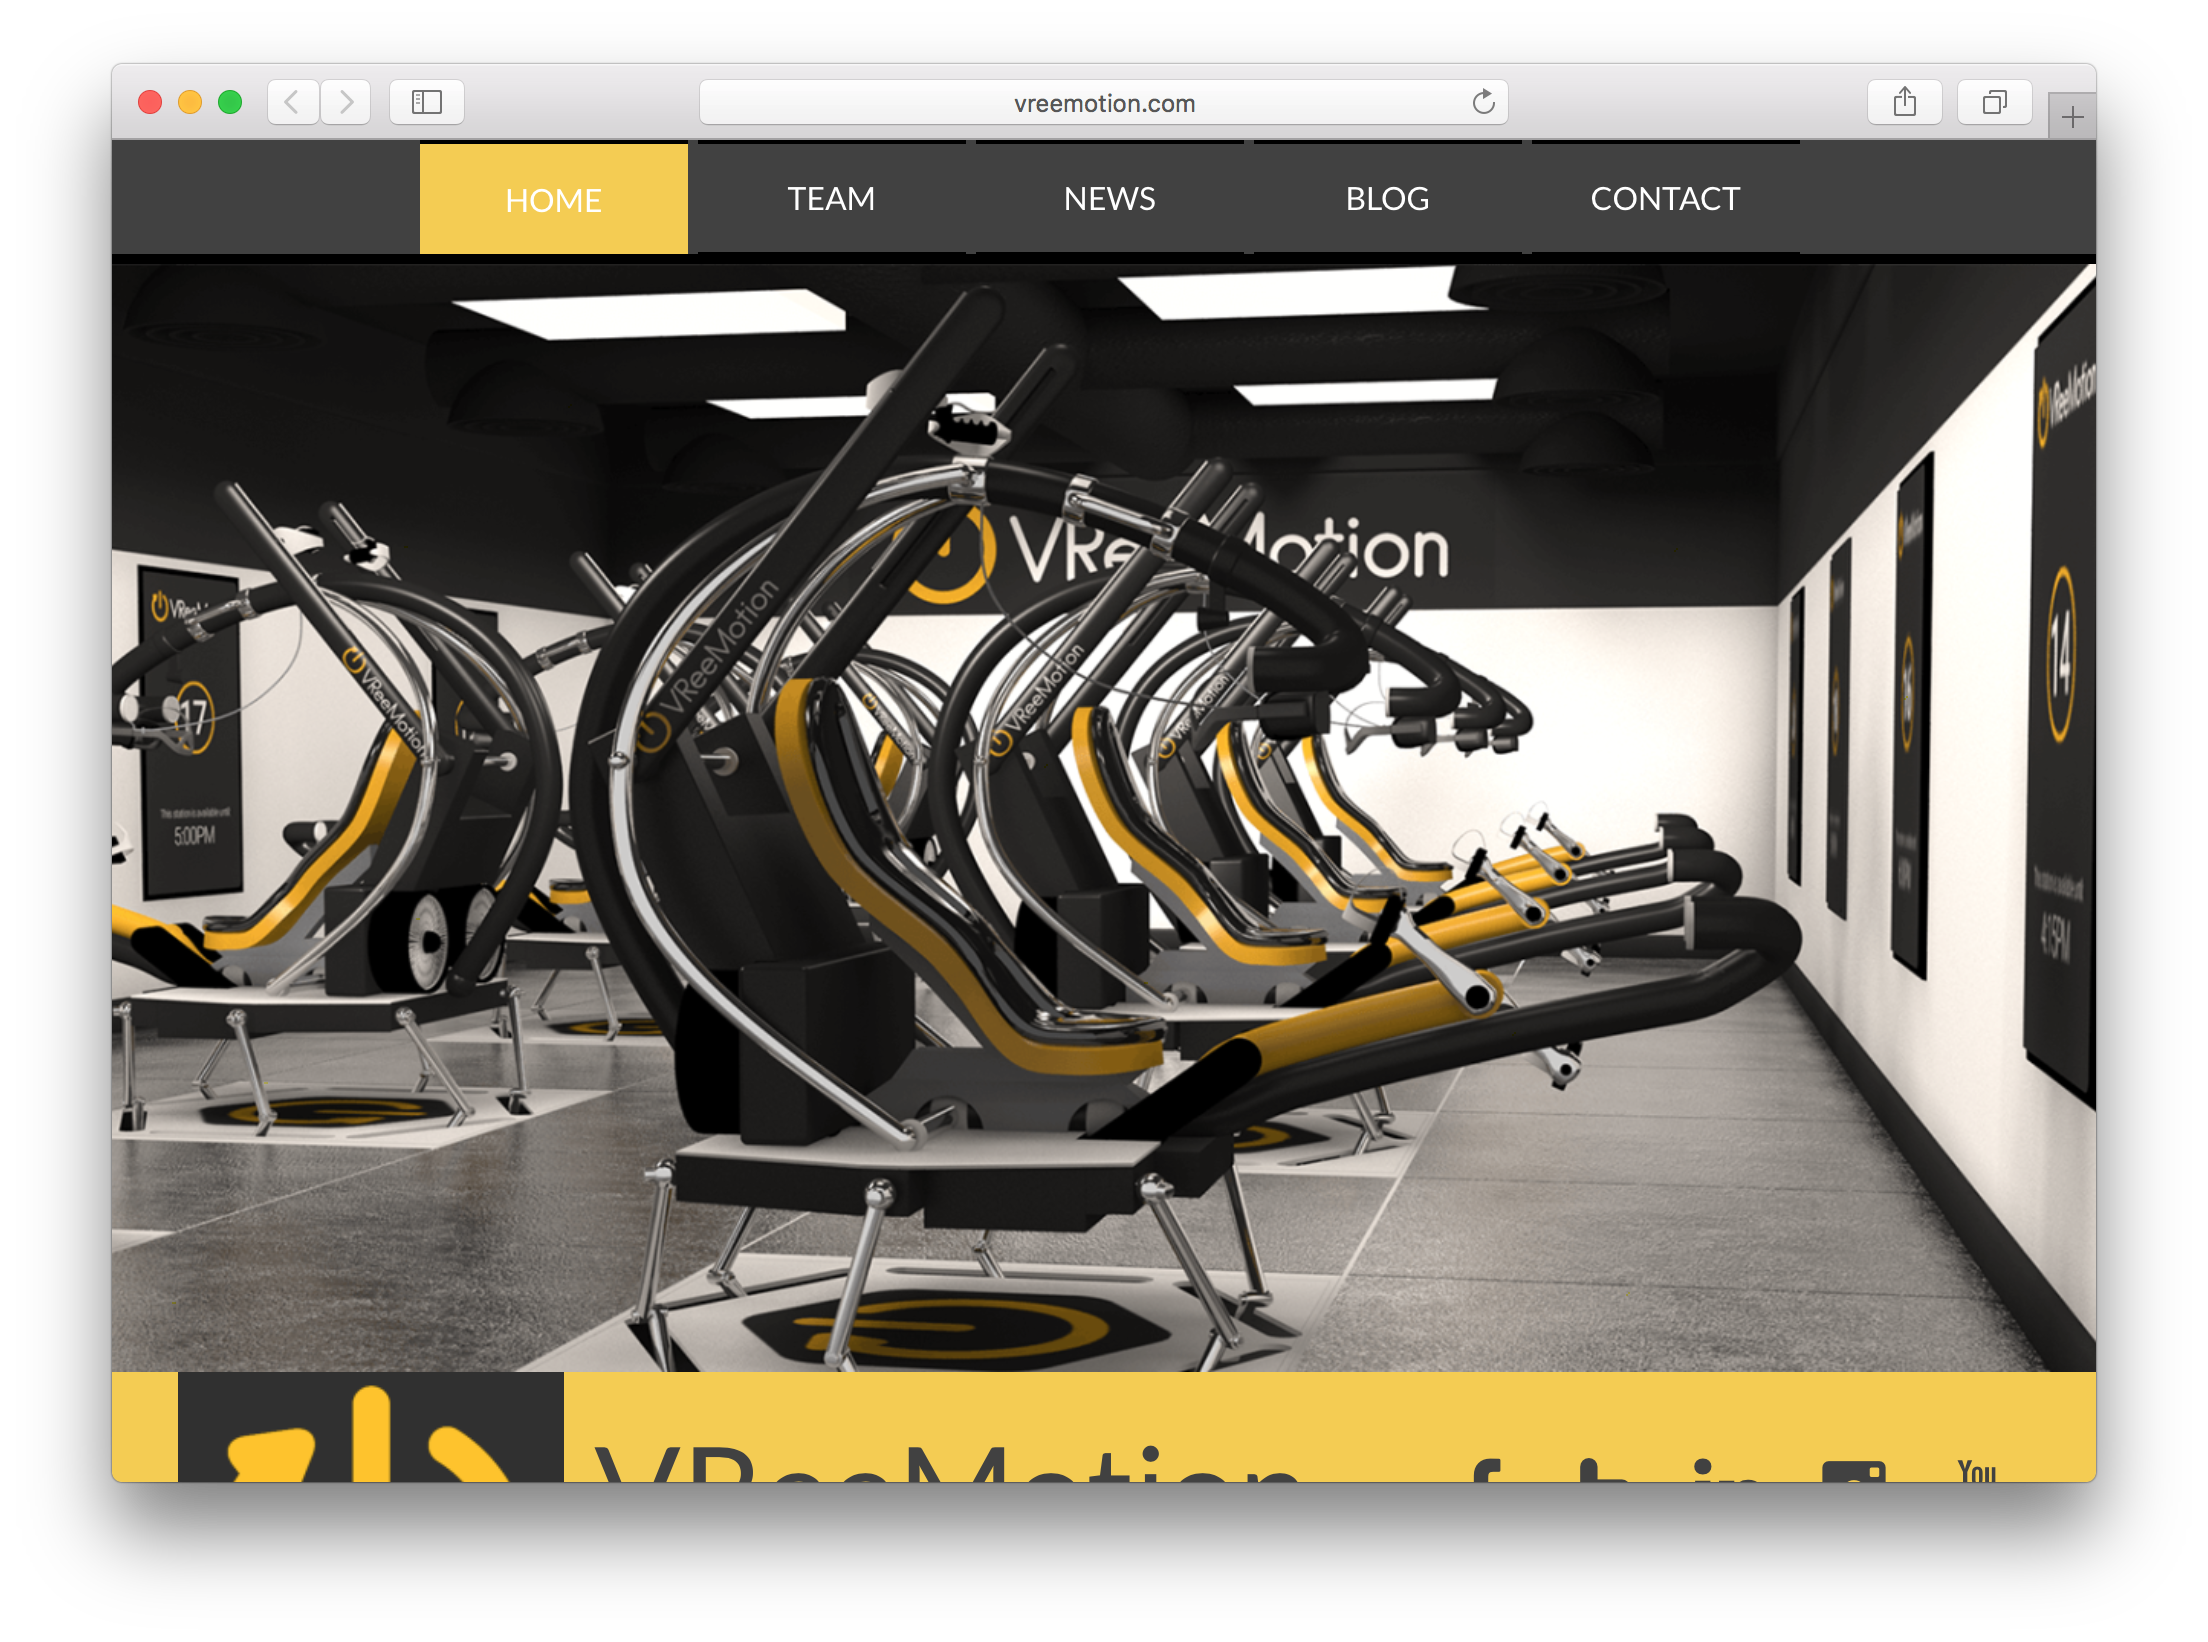 VREEMOTION - Platform which uses full motion simulation combined with a sophisticated sweat management system and controls with high fidelity feedback that not only deliver a deeply immersive experience